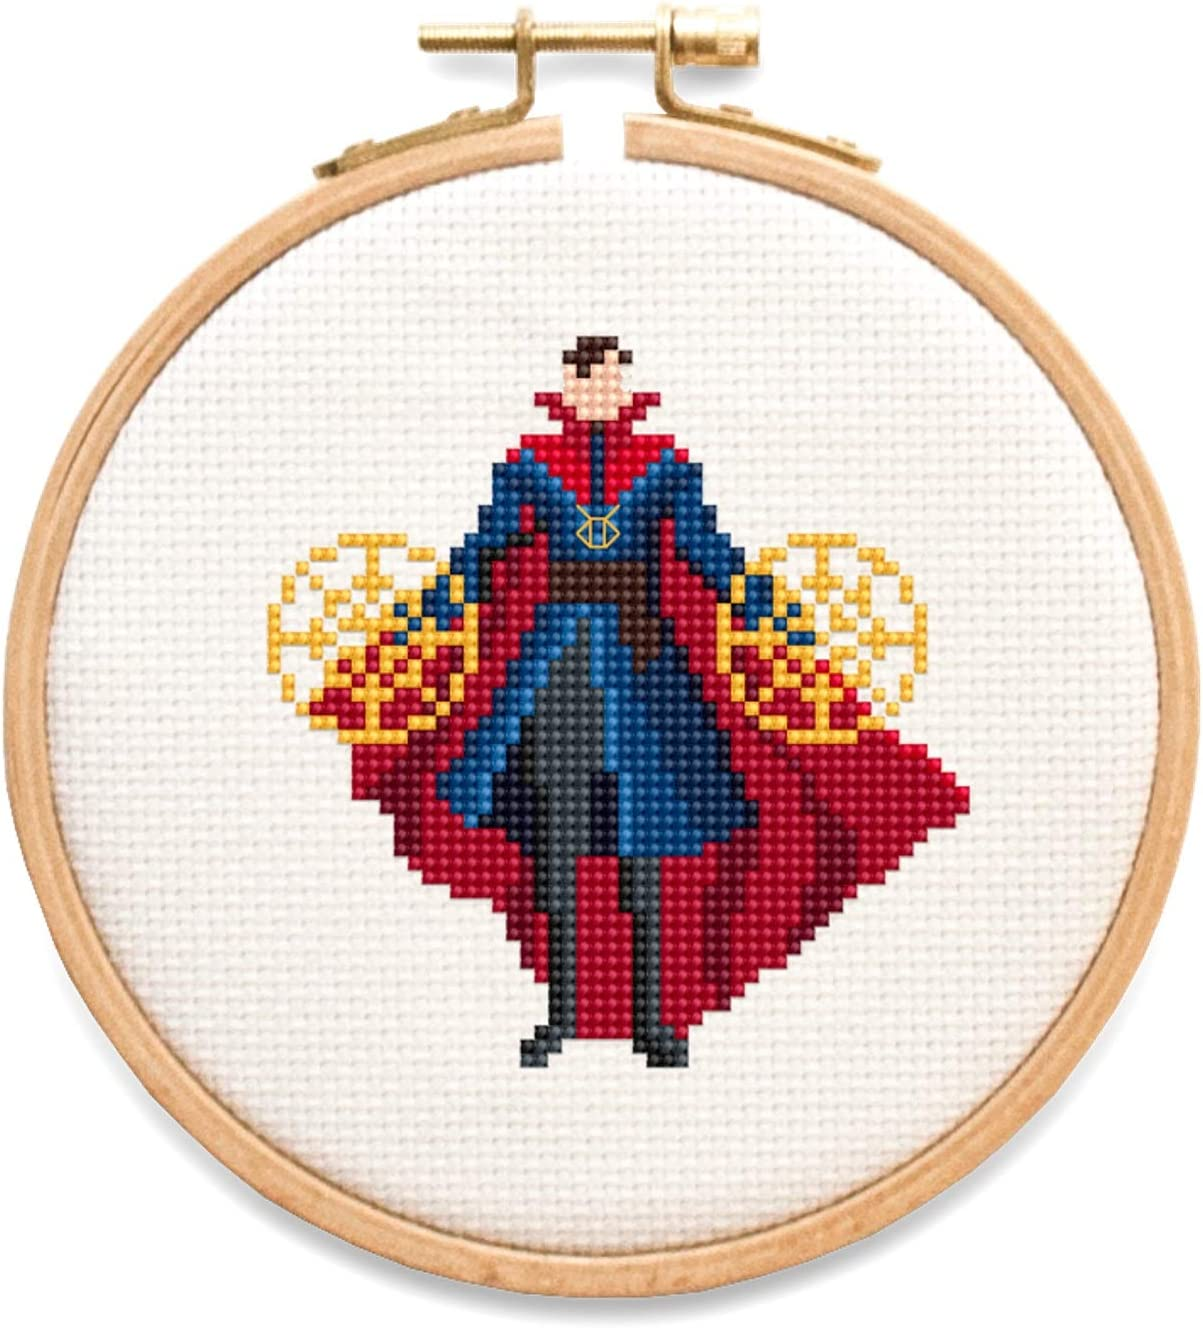 safety Doctor Strange Counted Cross Max 57% OFF Stitch Kit 14 3. Count Aida White